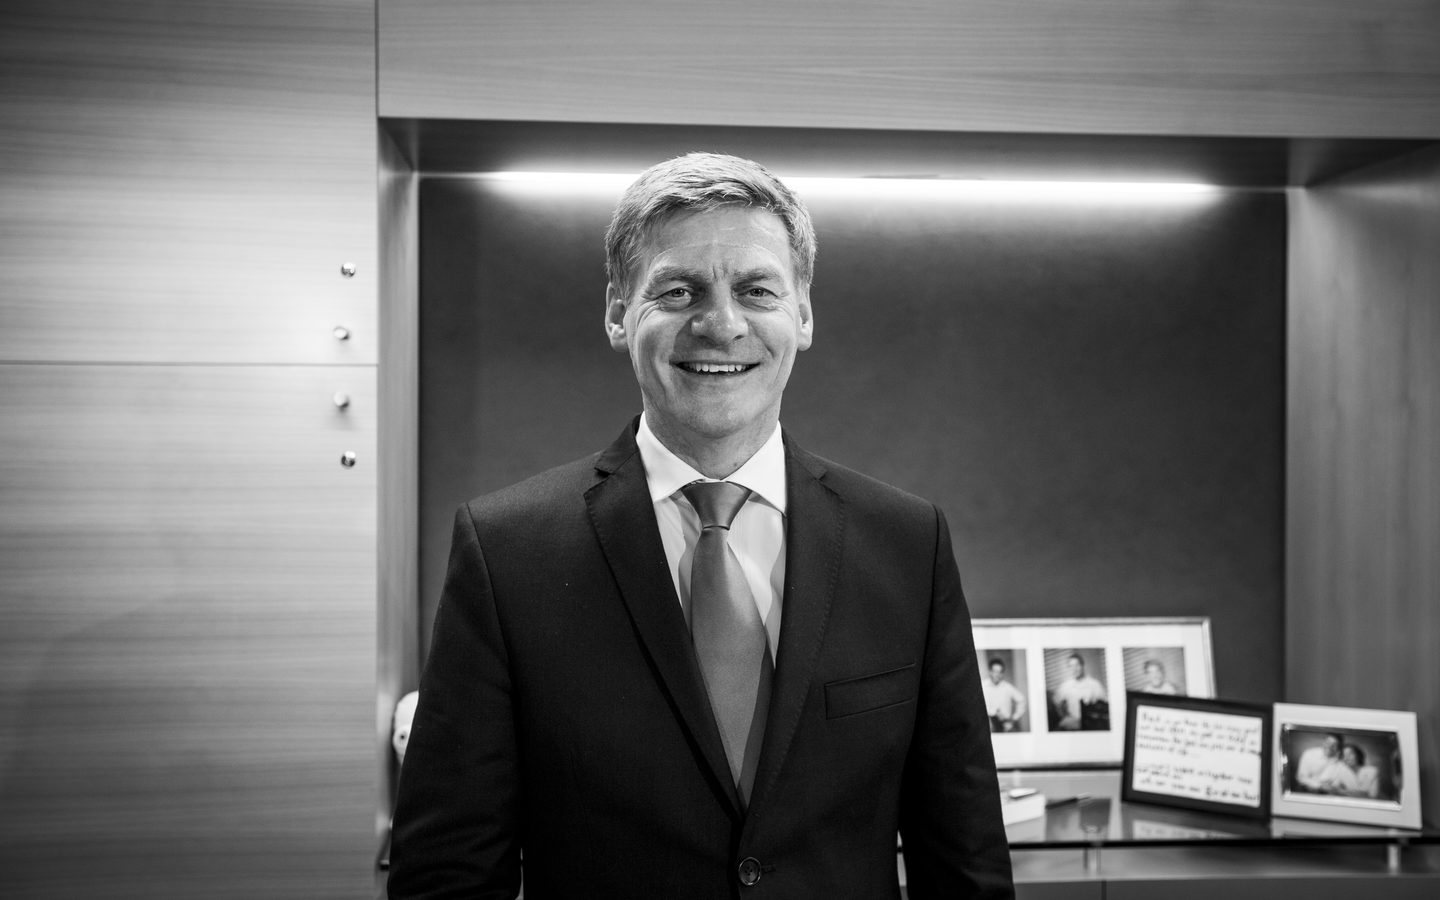 National Party leader Bill English